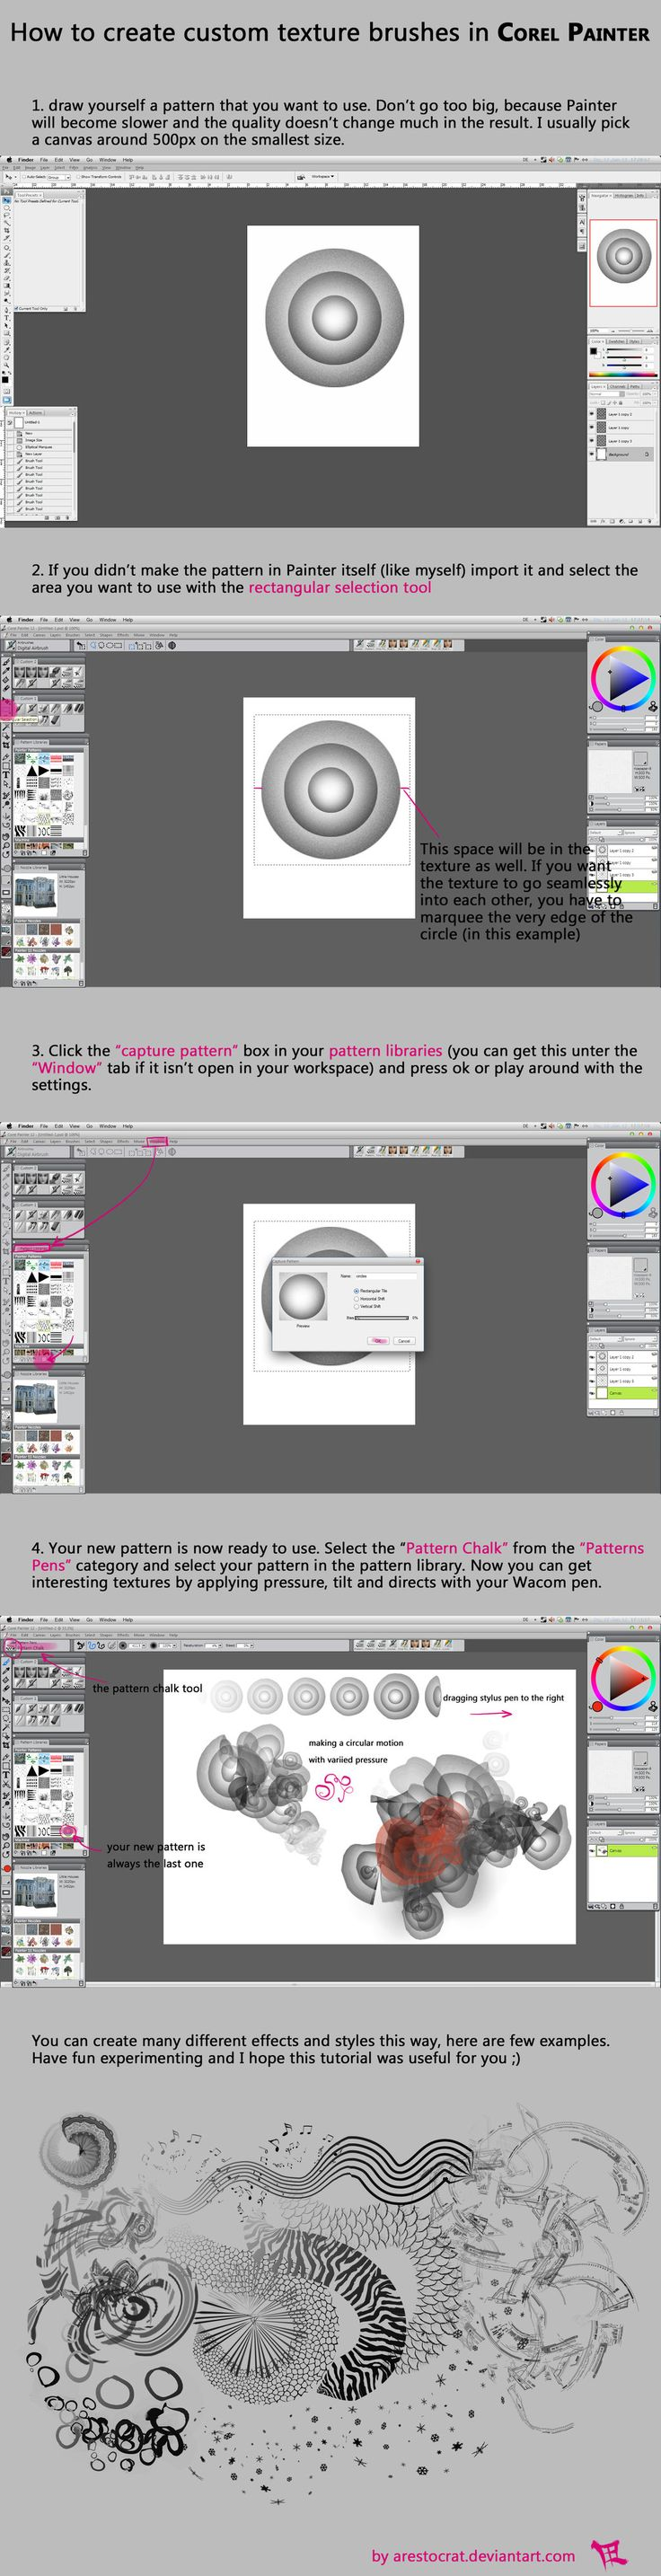 Corel Painter: How To Create A Pattern Brush By Arestocrat